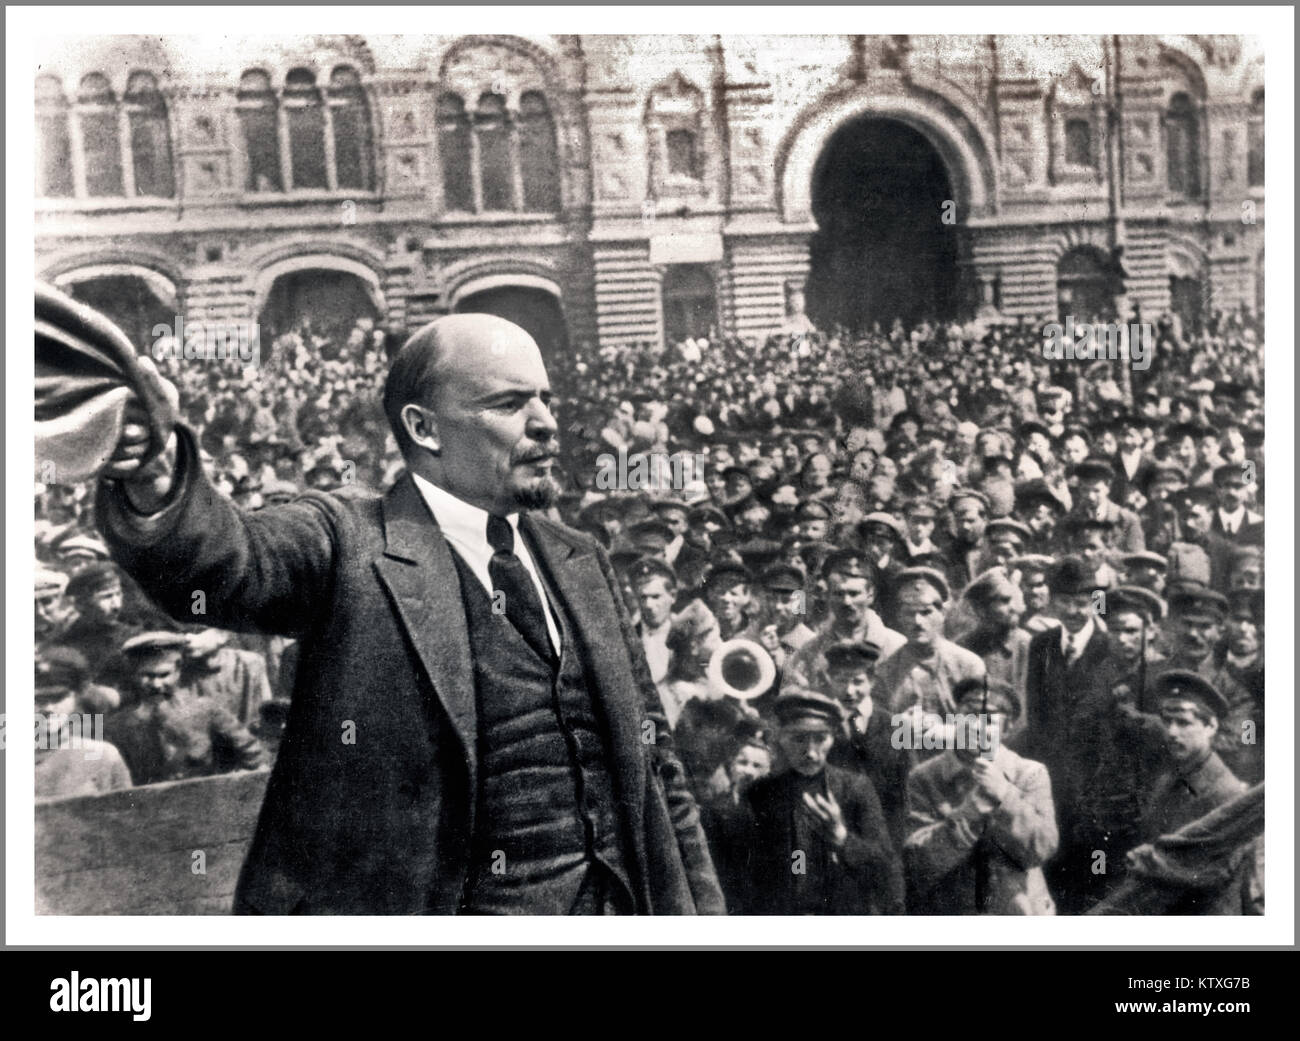 a history of the russian revolution of 1917 This russian revolution timeline lists significant events and developments in russia in 1917 this timeline has been written and compiled by alpha history authors note: russia used the julian or old style calendar until january 24th 1918, when this system was replaced by the gregorian or new style calendar.